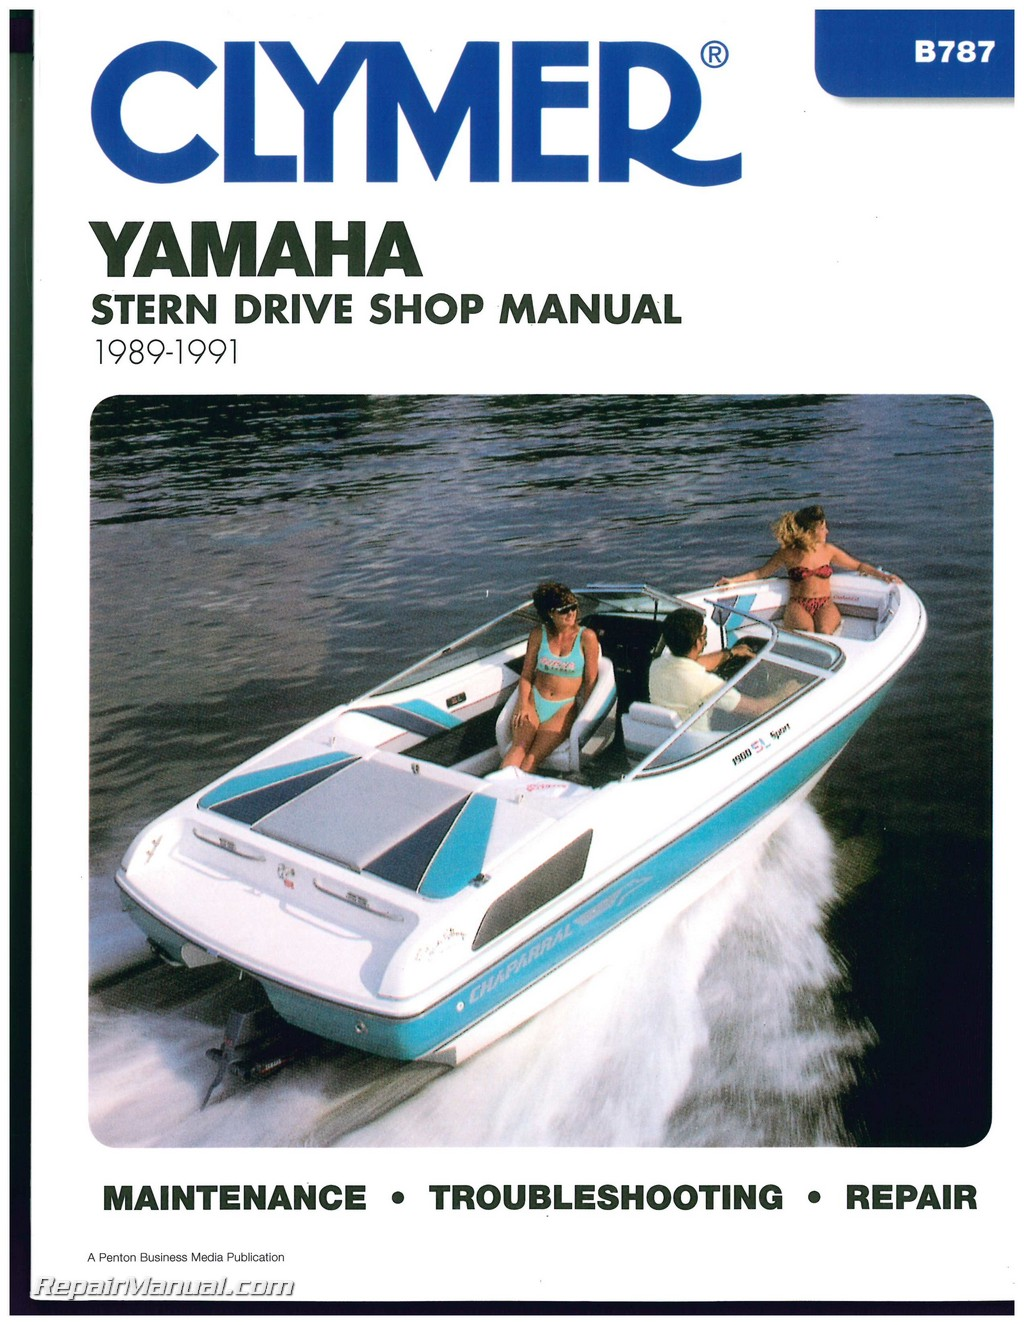 yamaha stern drive 1989 1990 1991 clymer boat engine repair manual rh repairmanual com